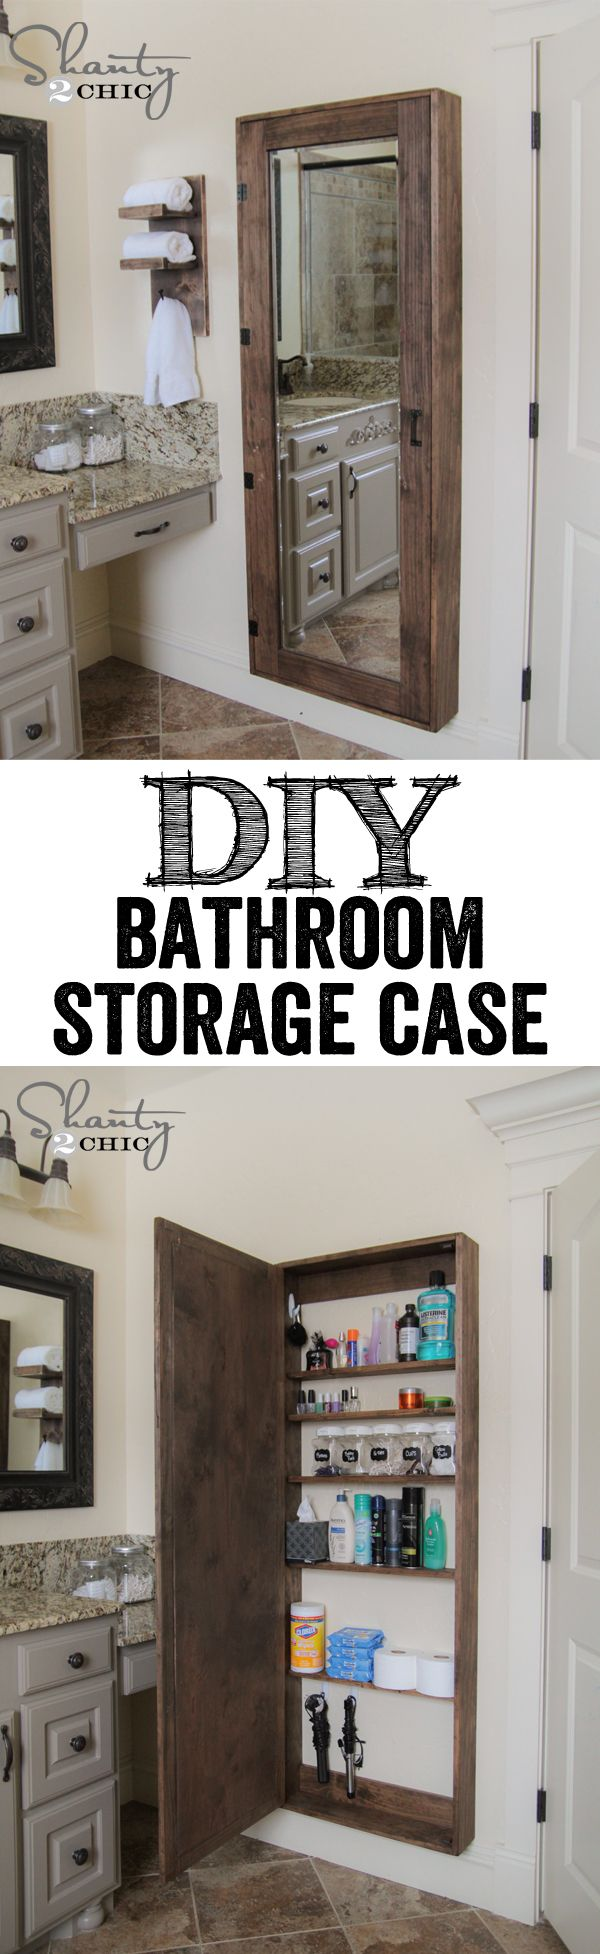 DIY Bathroom Organization Cabinet with full length mirror…. LOVE THIS IDEA!